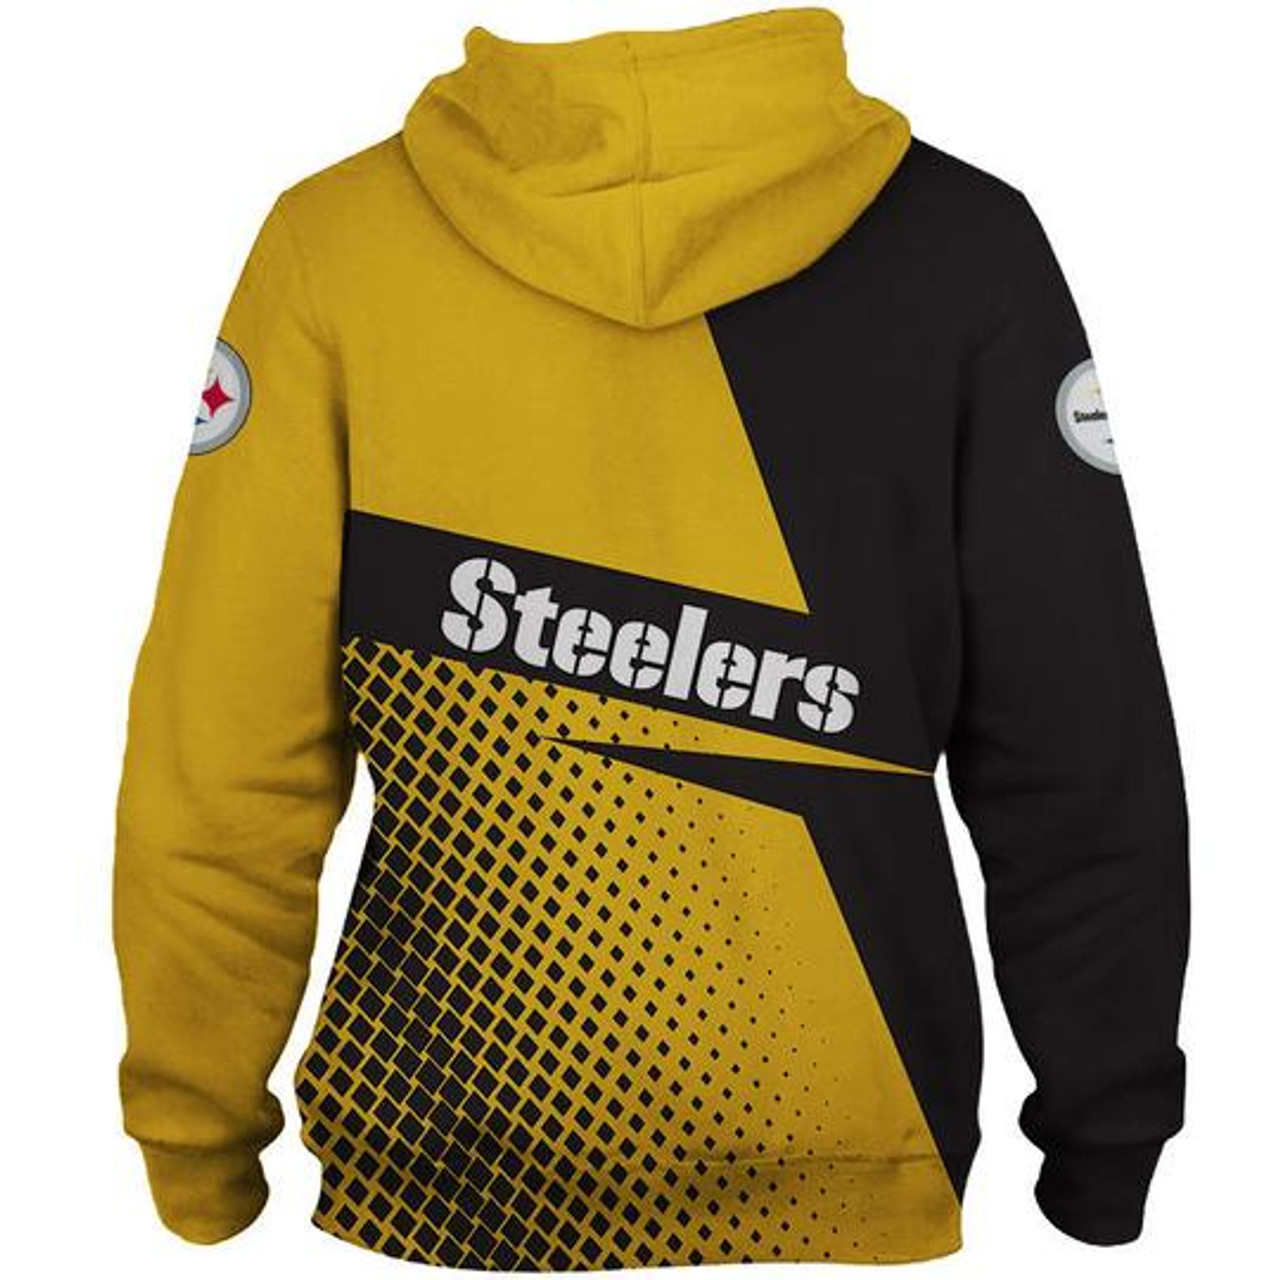 **(OFFICIAL-N.F.L.PITTSBURGH-STEELERS-PULLOVER-HOODIES/OFFICIAL-STEELERS-TEAM-LOGOS & OFFICIAL-STEELERS-TEAM-COLORS/NICE-CUSTOM-DETAILED-3D-GRAPHIC-PRINTED-DOUBLE-SIDED-DESIGN/TRENDY-WARM-PREMIUM-N.F.L.STEELERS/GAME-DAY-TEAM-PULLOVER-HOODIES)**